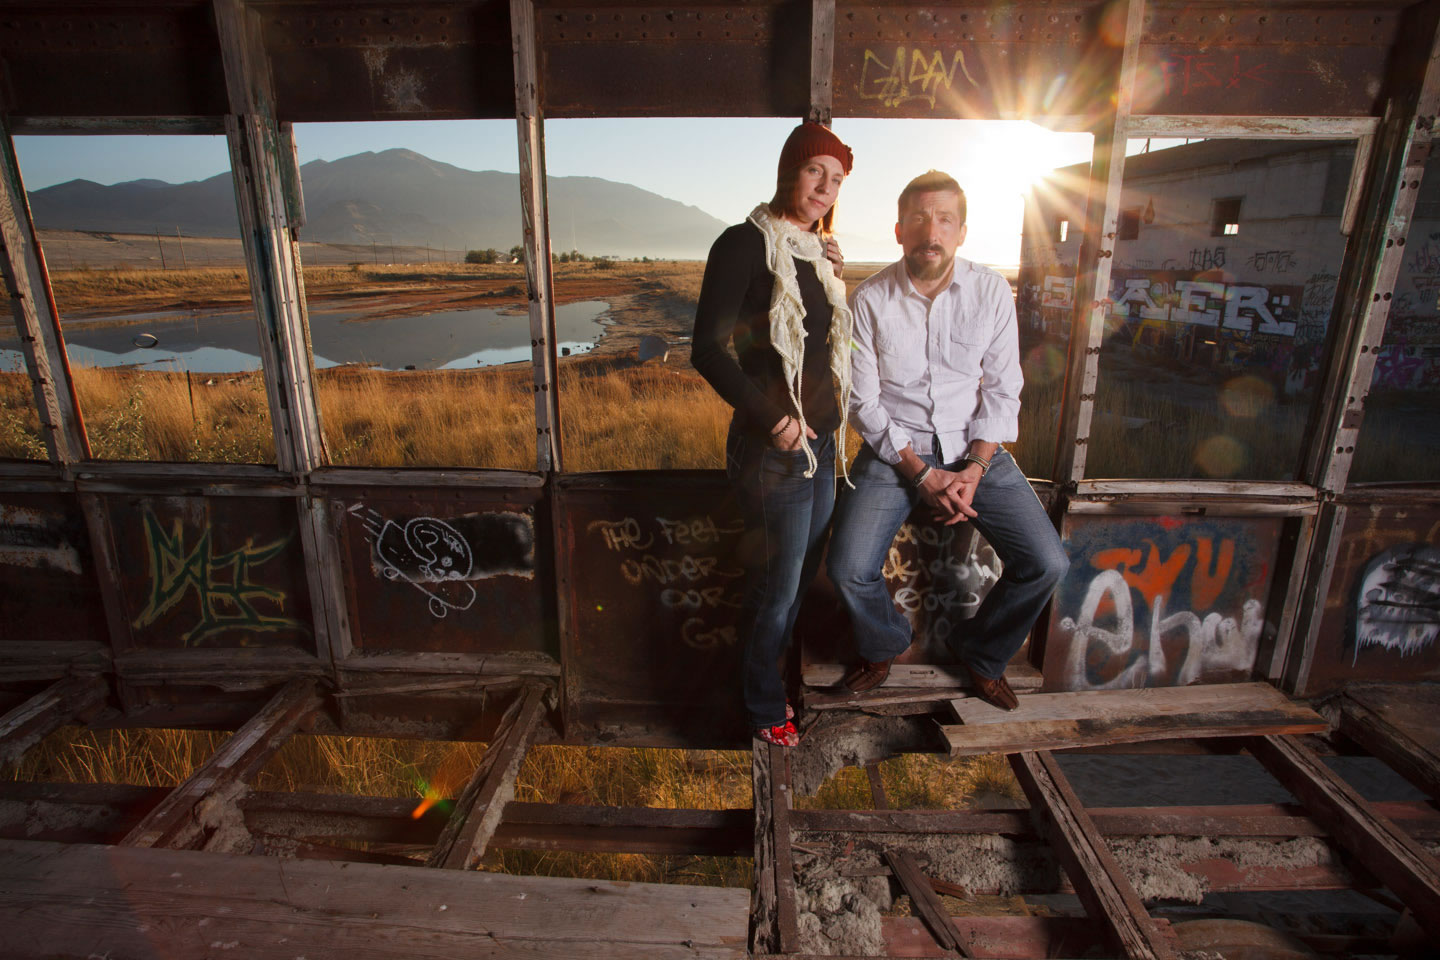 Hanging out for portraits at the abandoned trolley